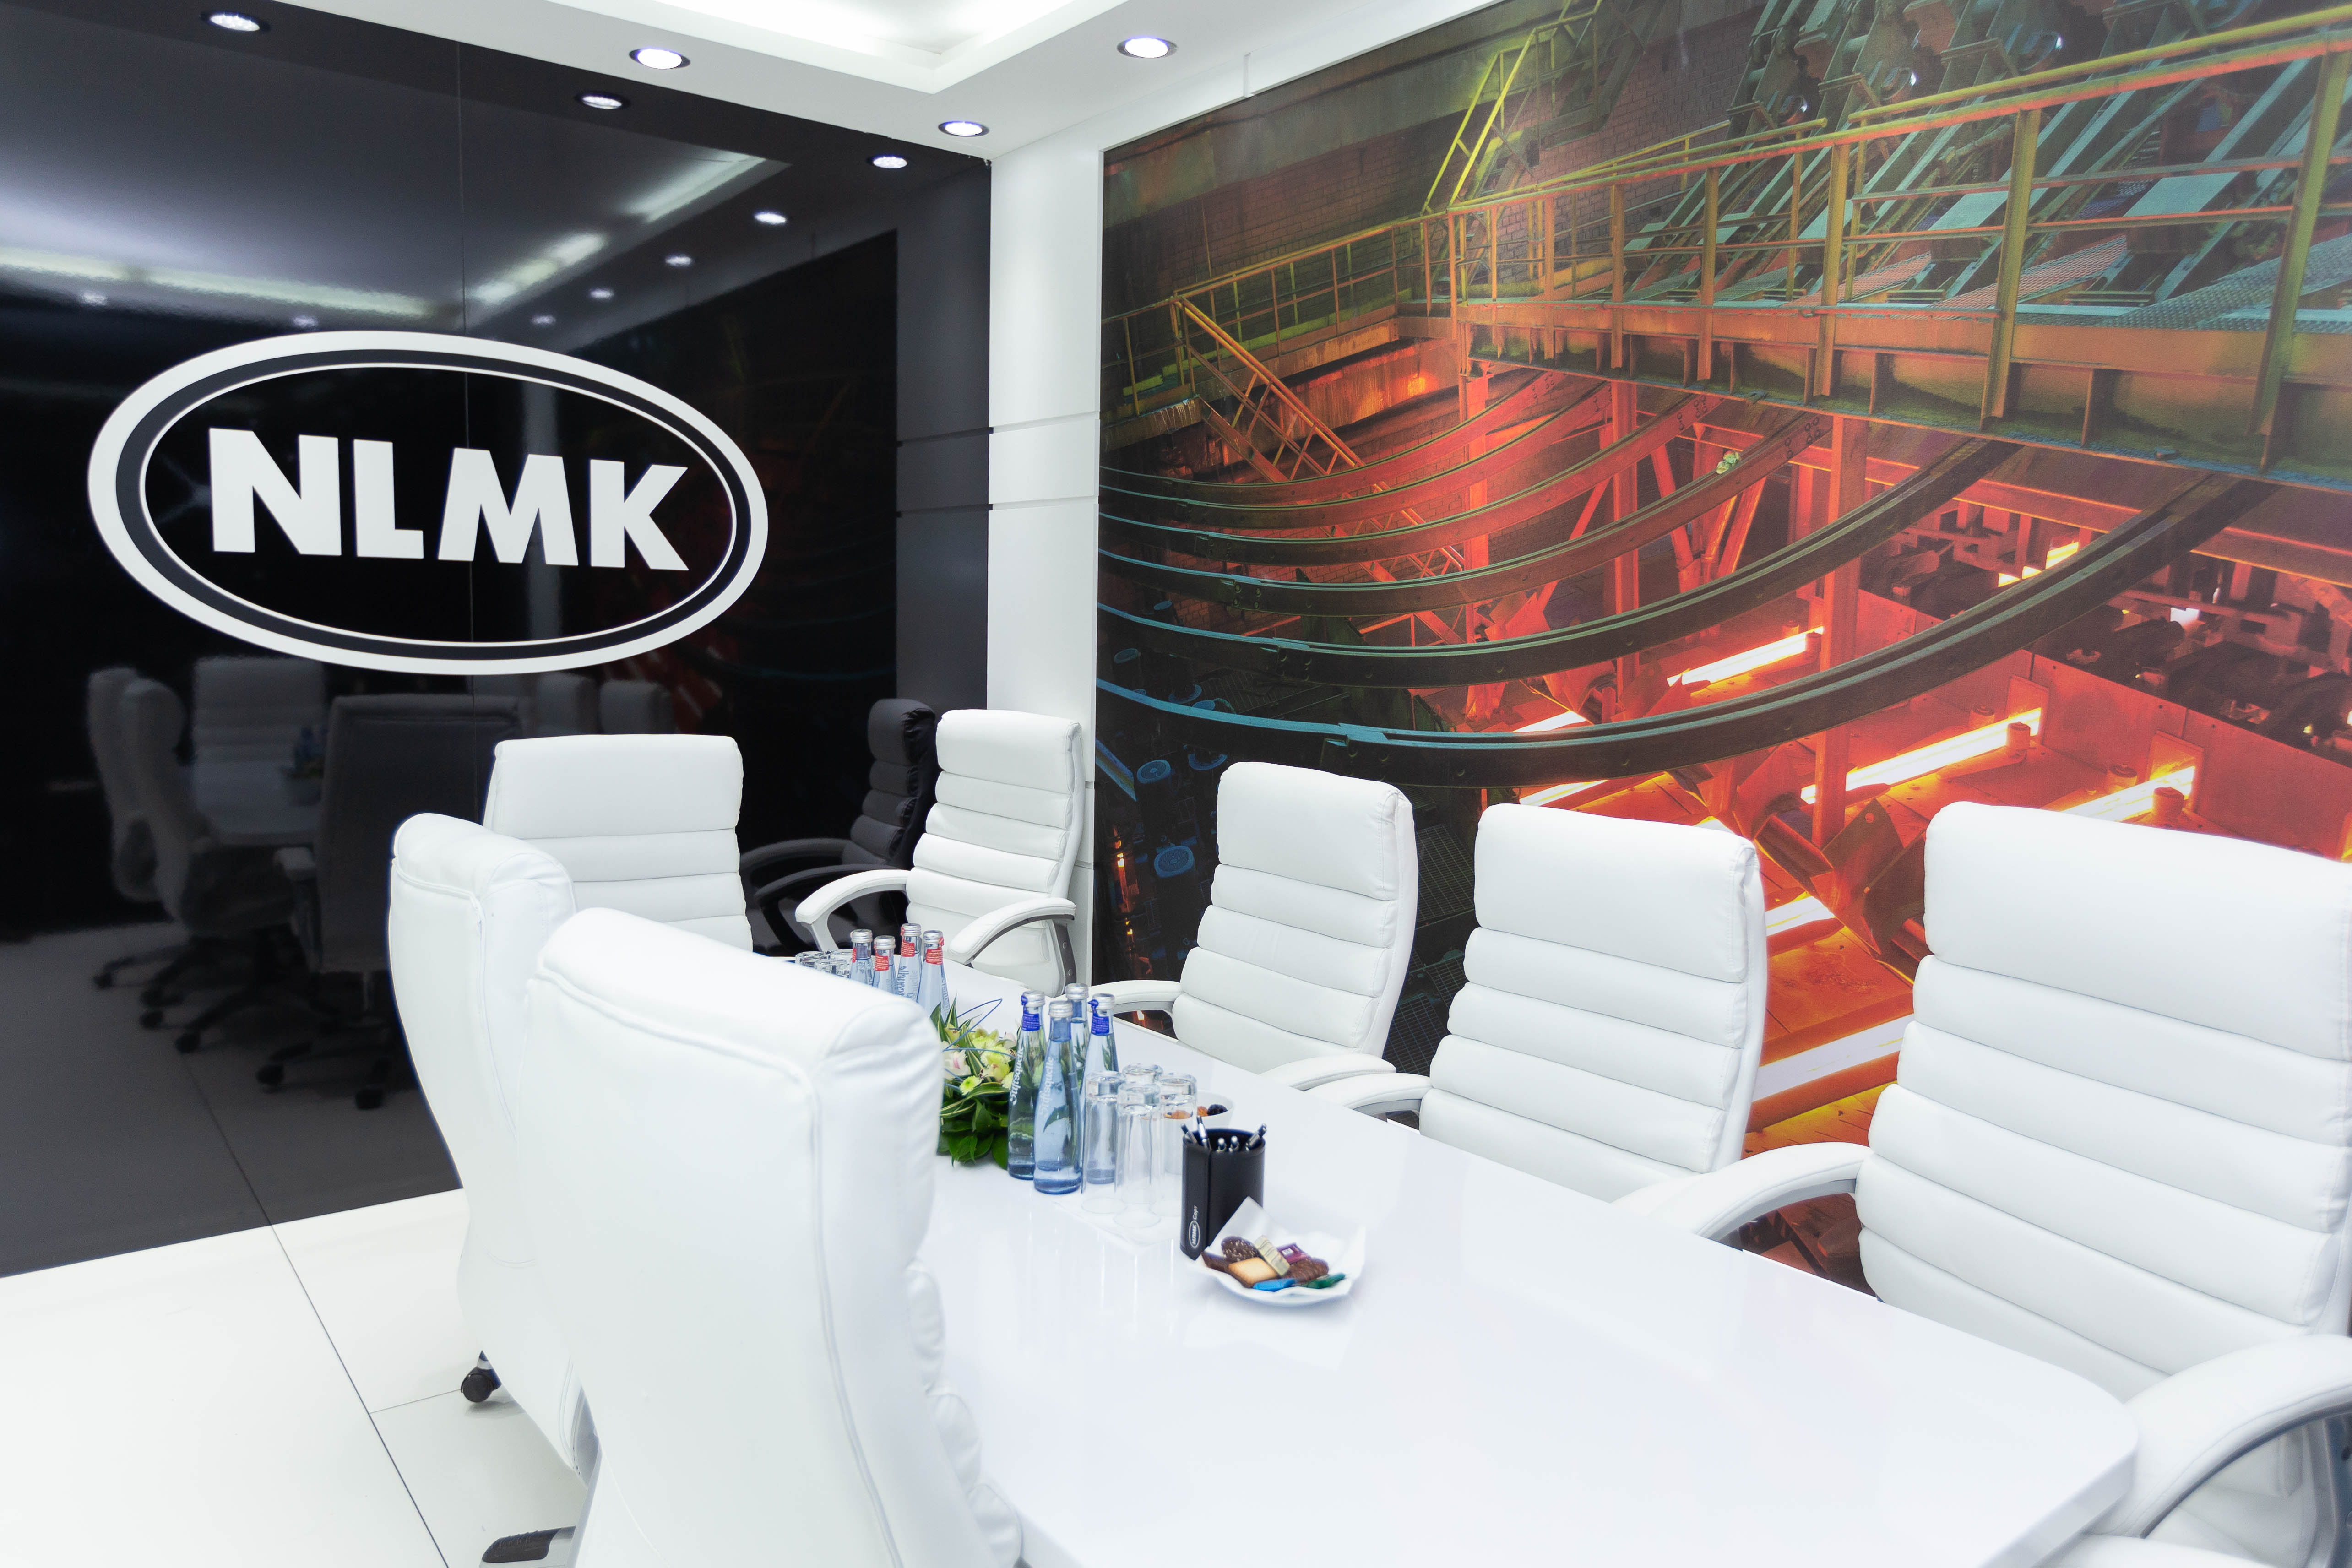 NLMK Group's stand at Wire 2018 International Trade Fair